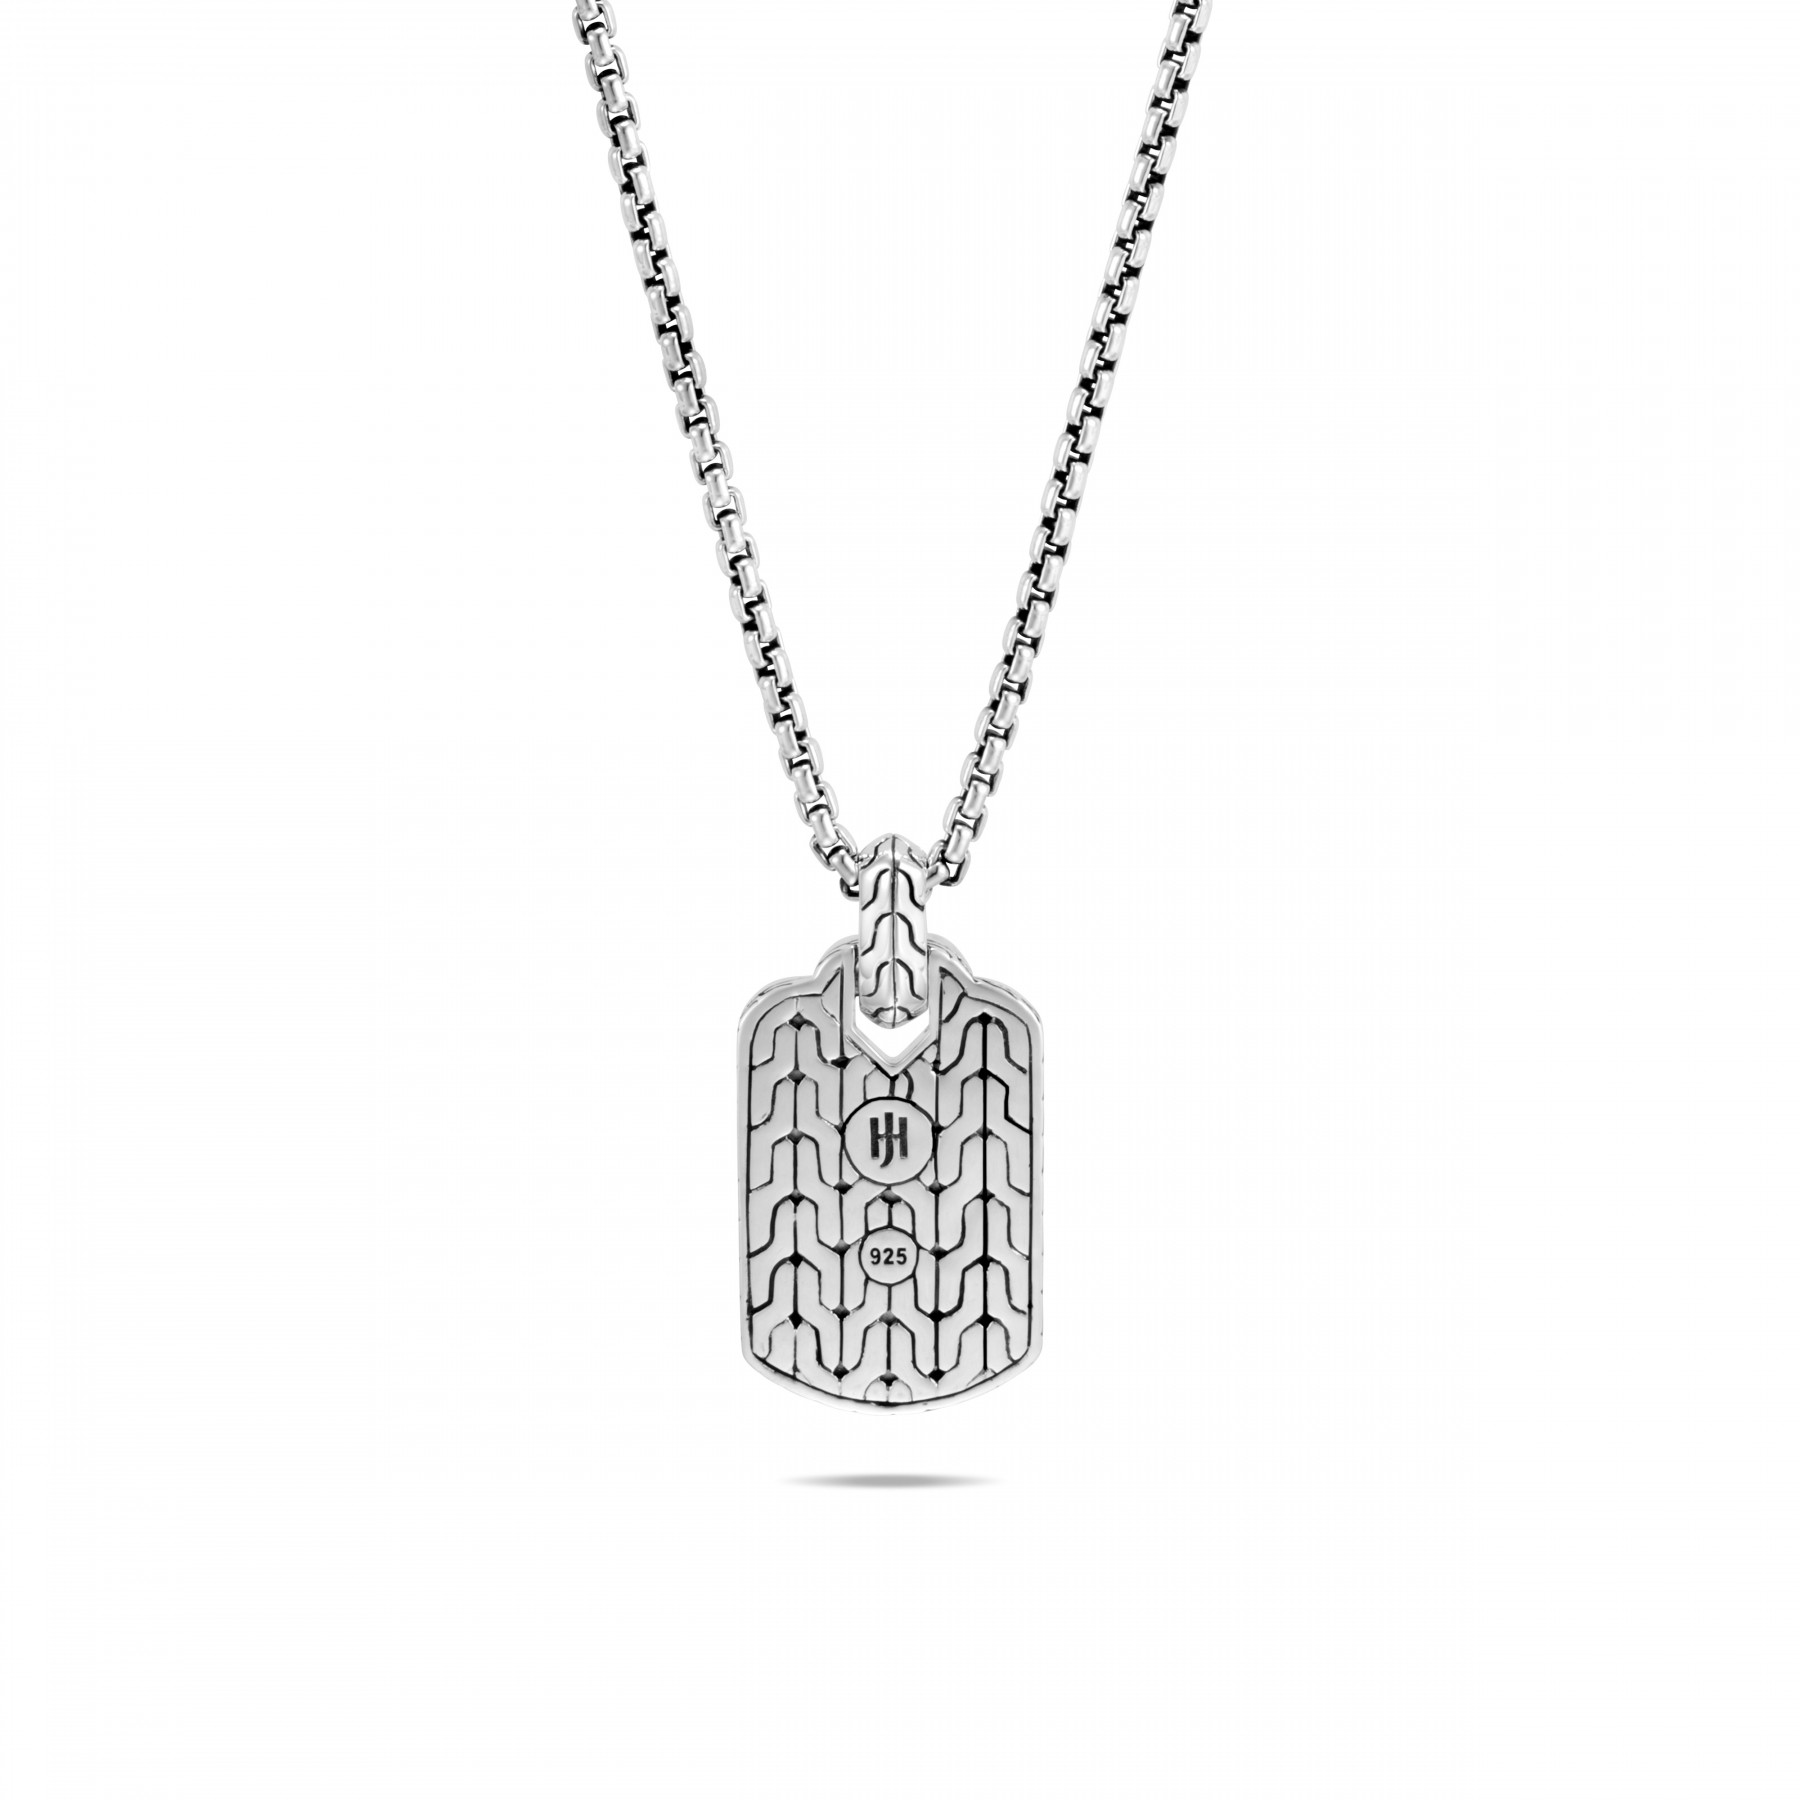 John Hardy Asli Classic Chain Silver and Black Necklace back view